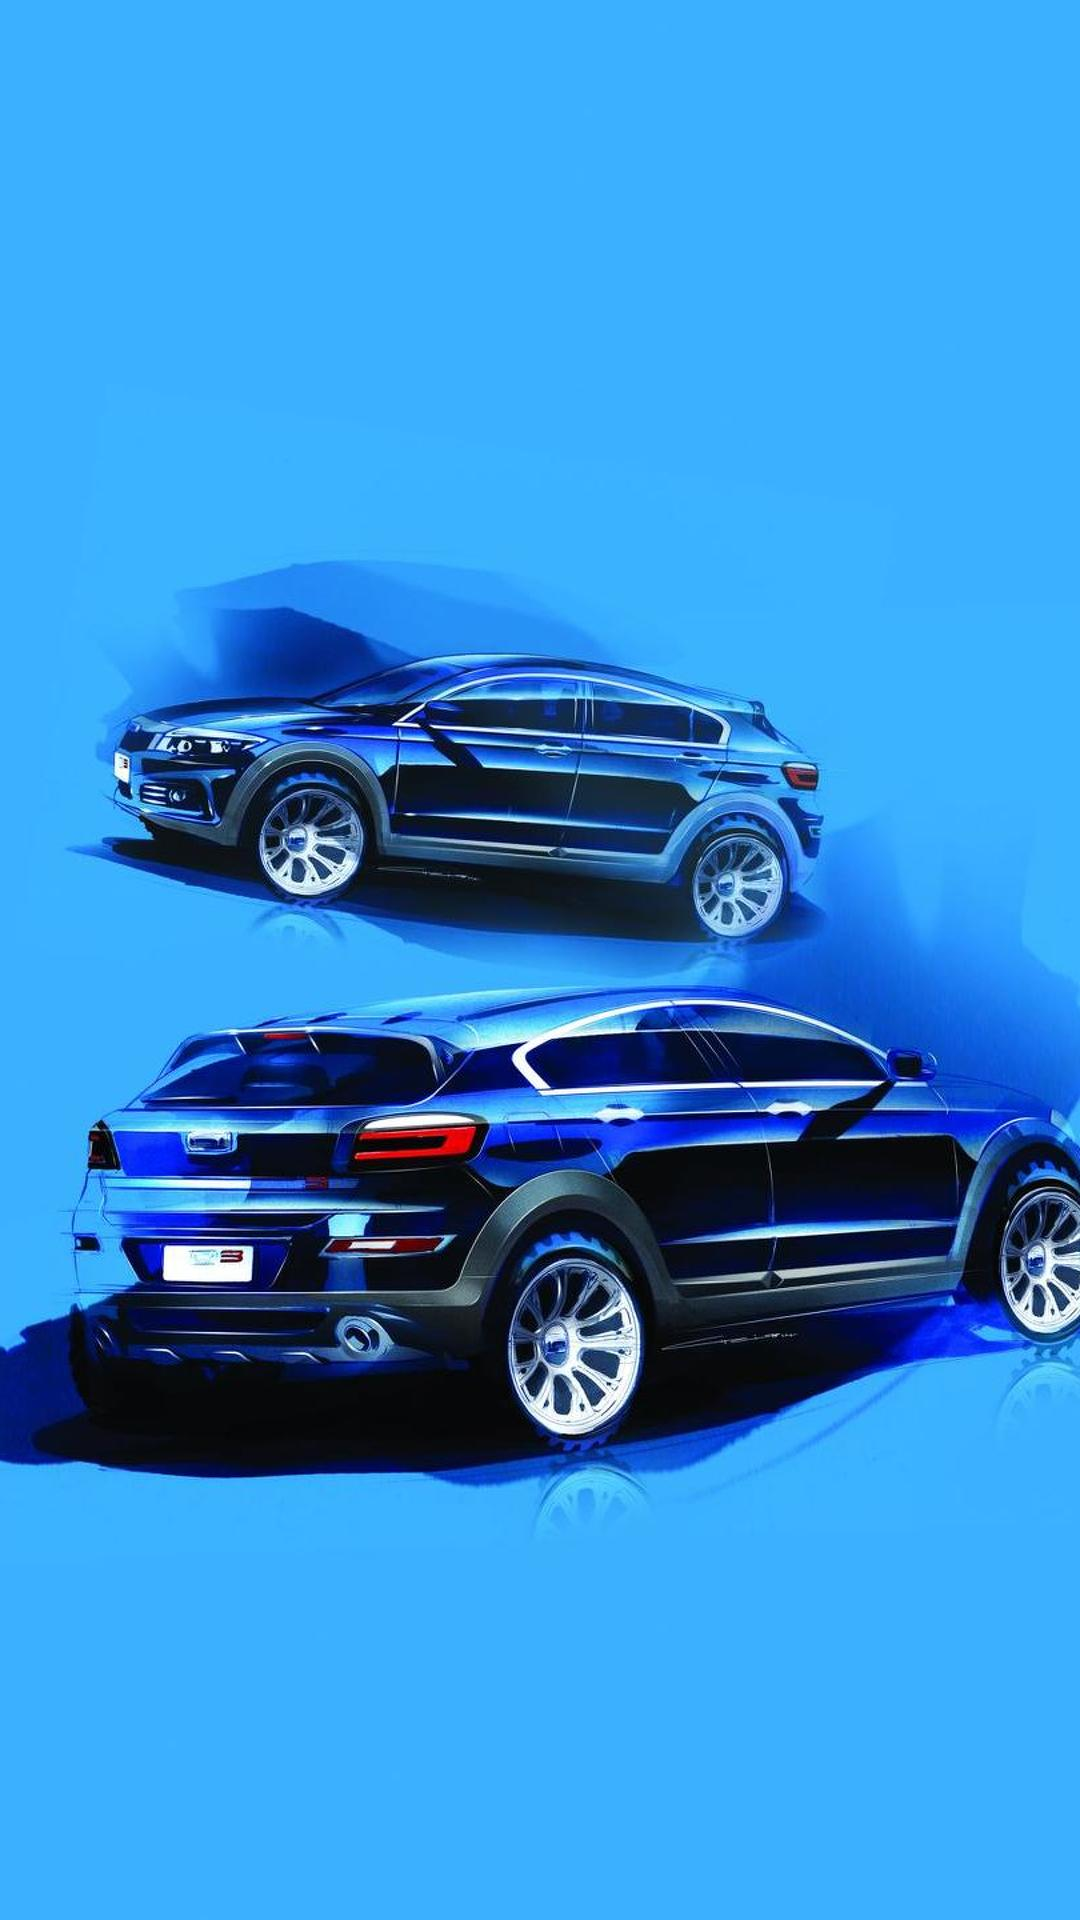 Qoros teases 3 City SUV ahead of Guangzhou Auto Show premiere